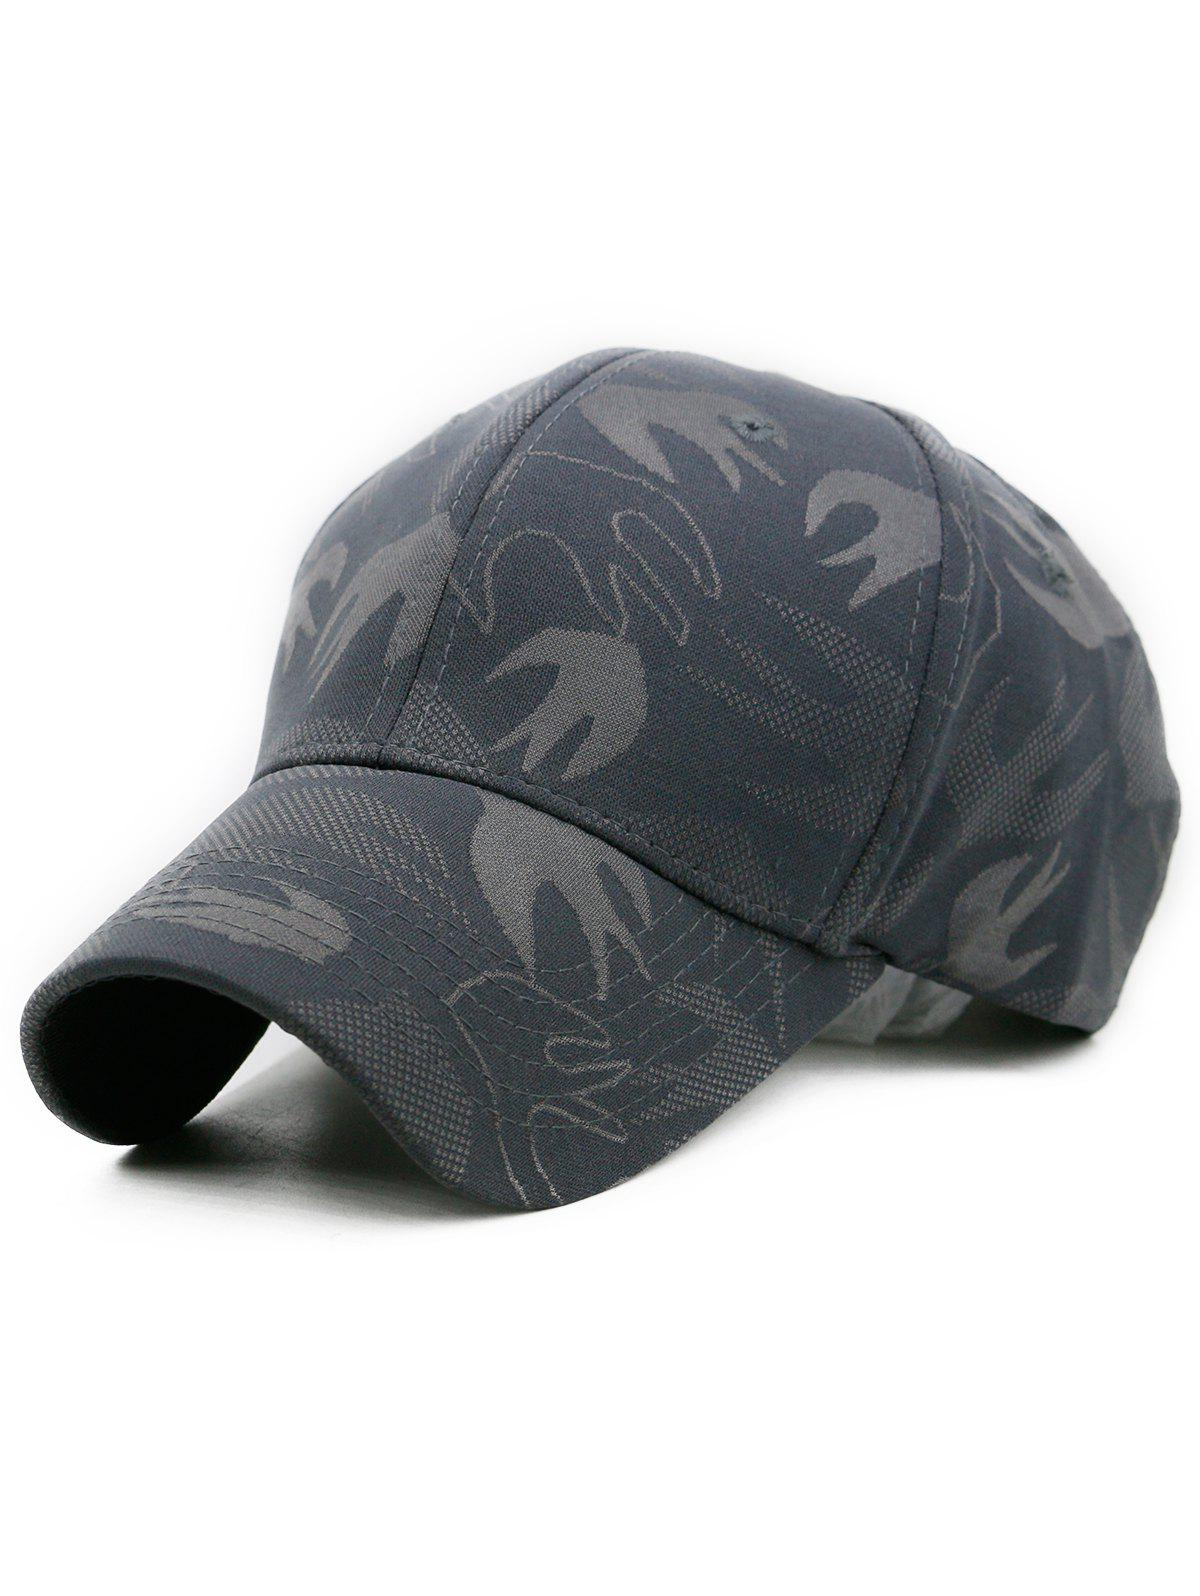 Outdoor Solid Color Adjustable Sunscreen Hat - GRAY